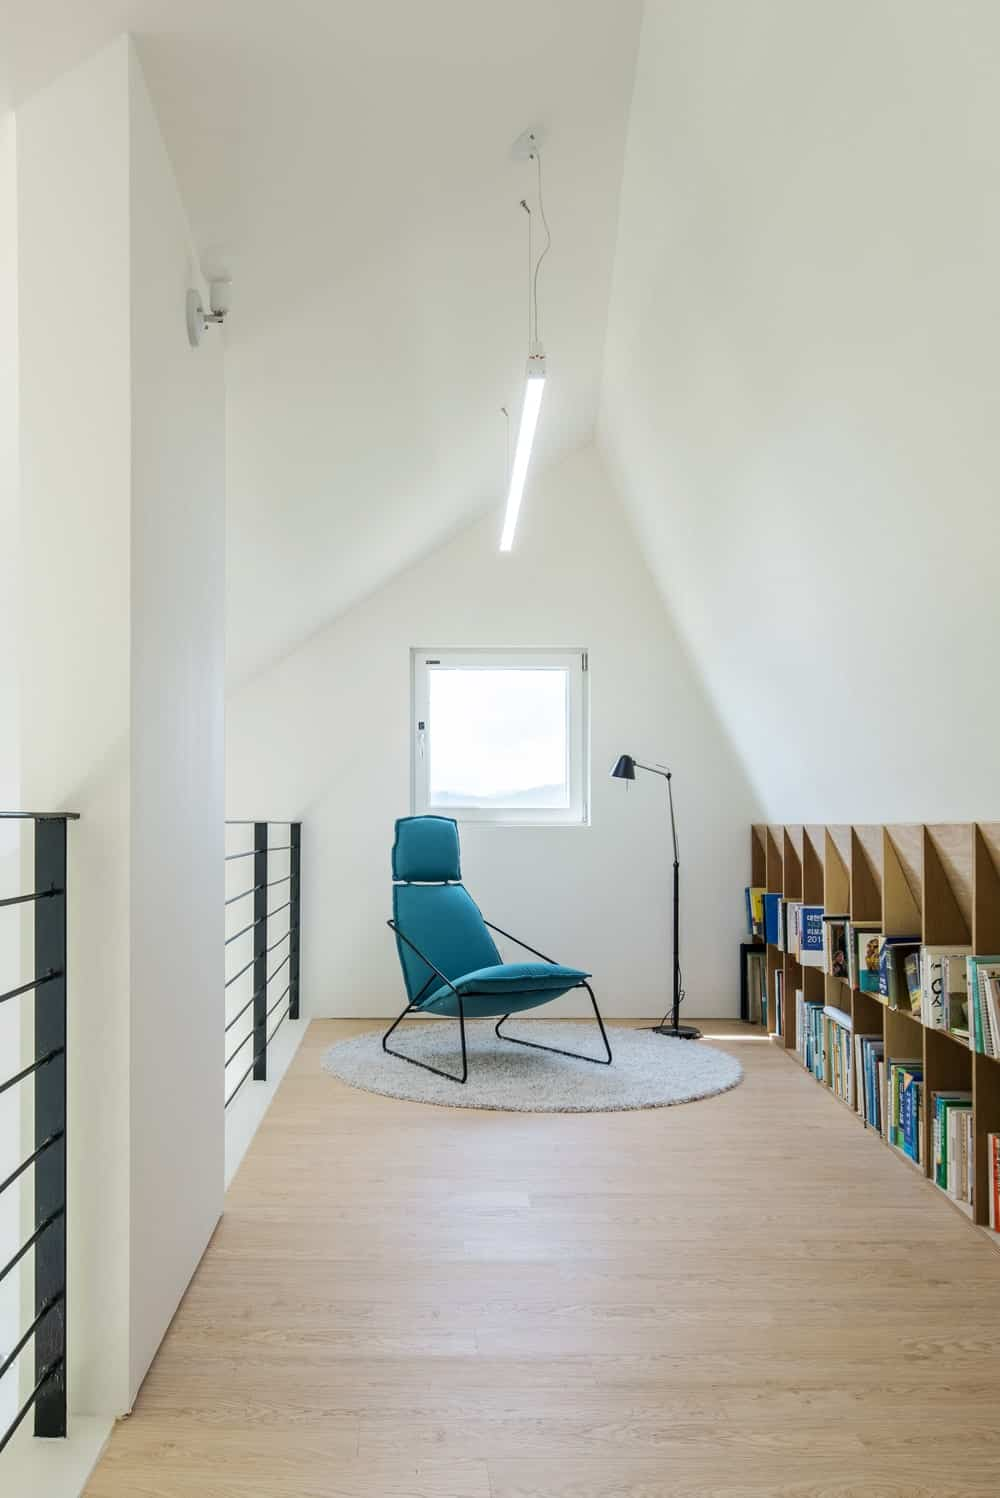 This is a look at the attic library that has a wooden structure built into the wall on the side for books. This is paired with a comfortable chair by the window and lamp.